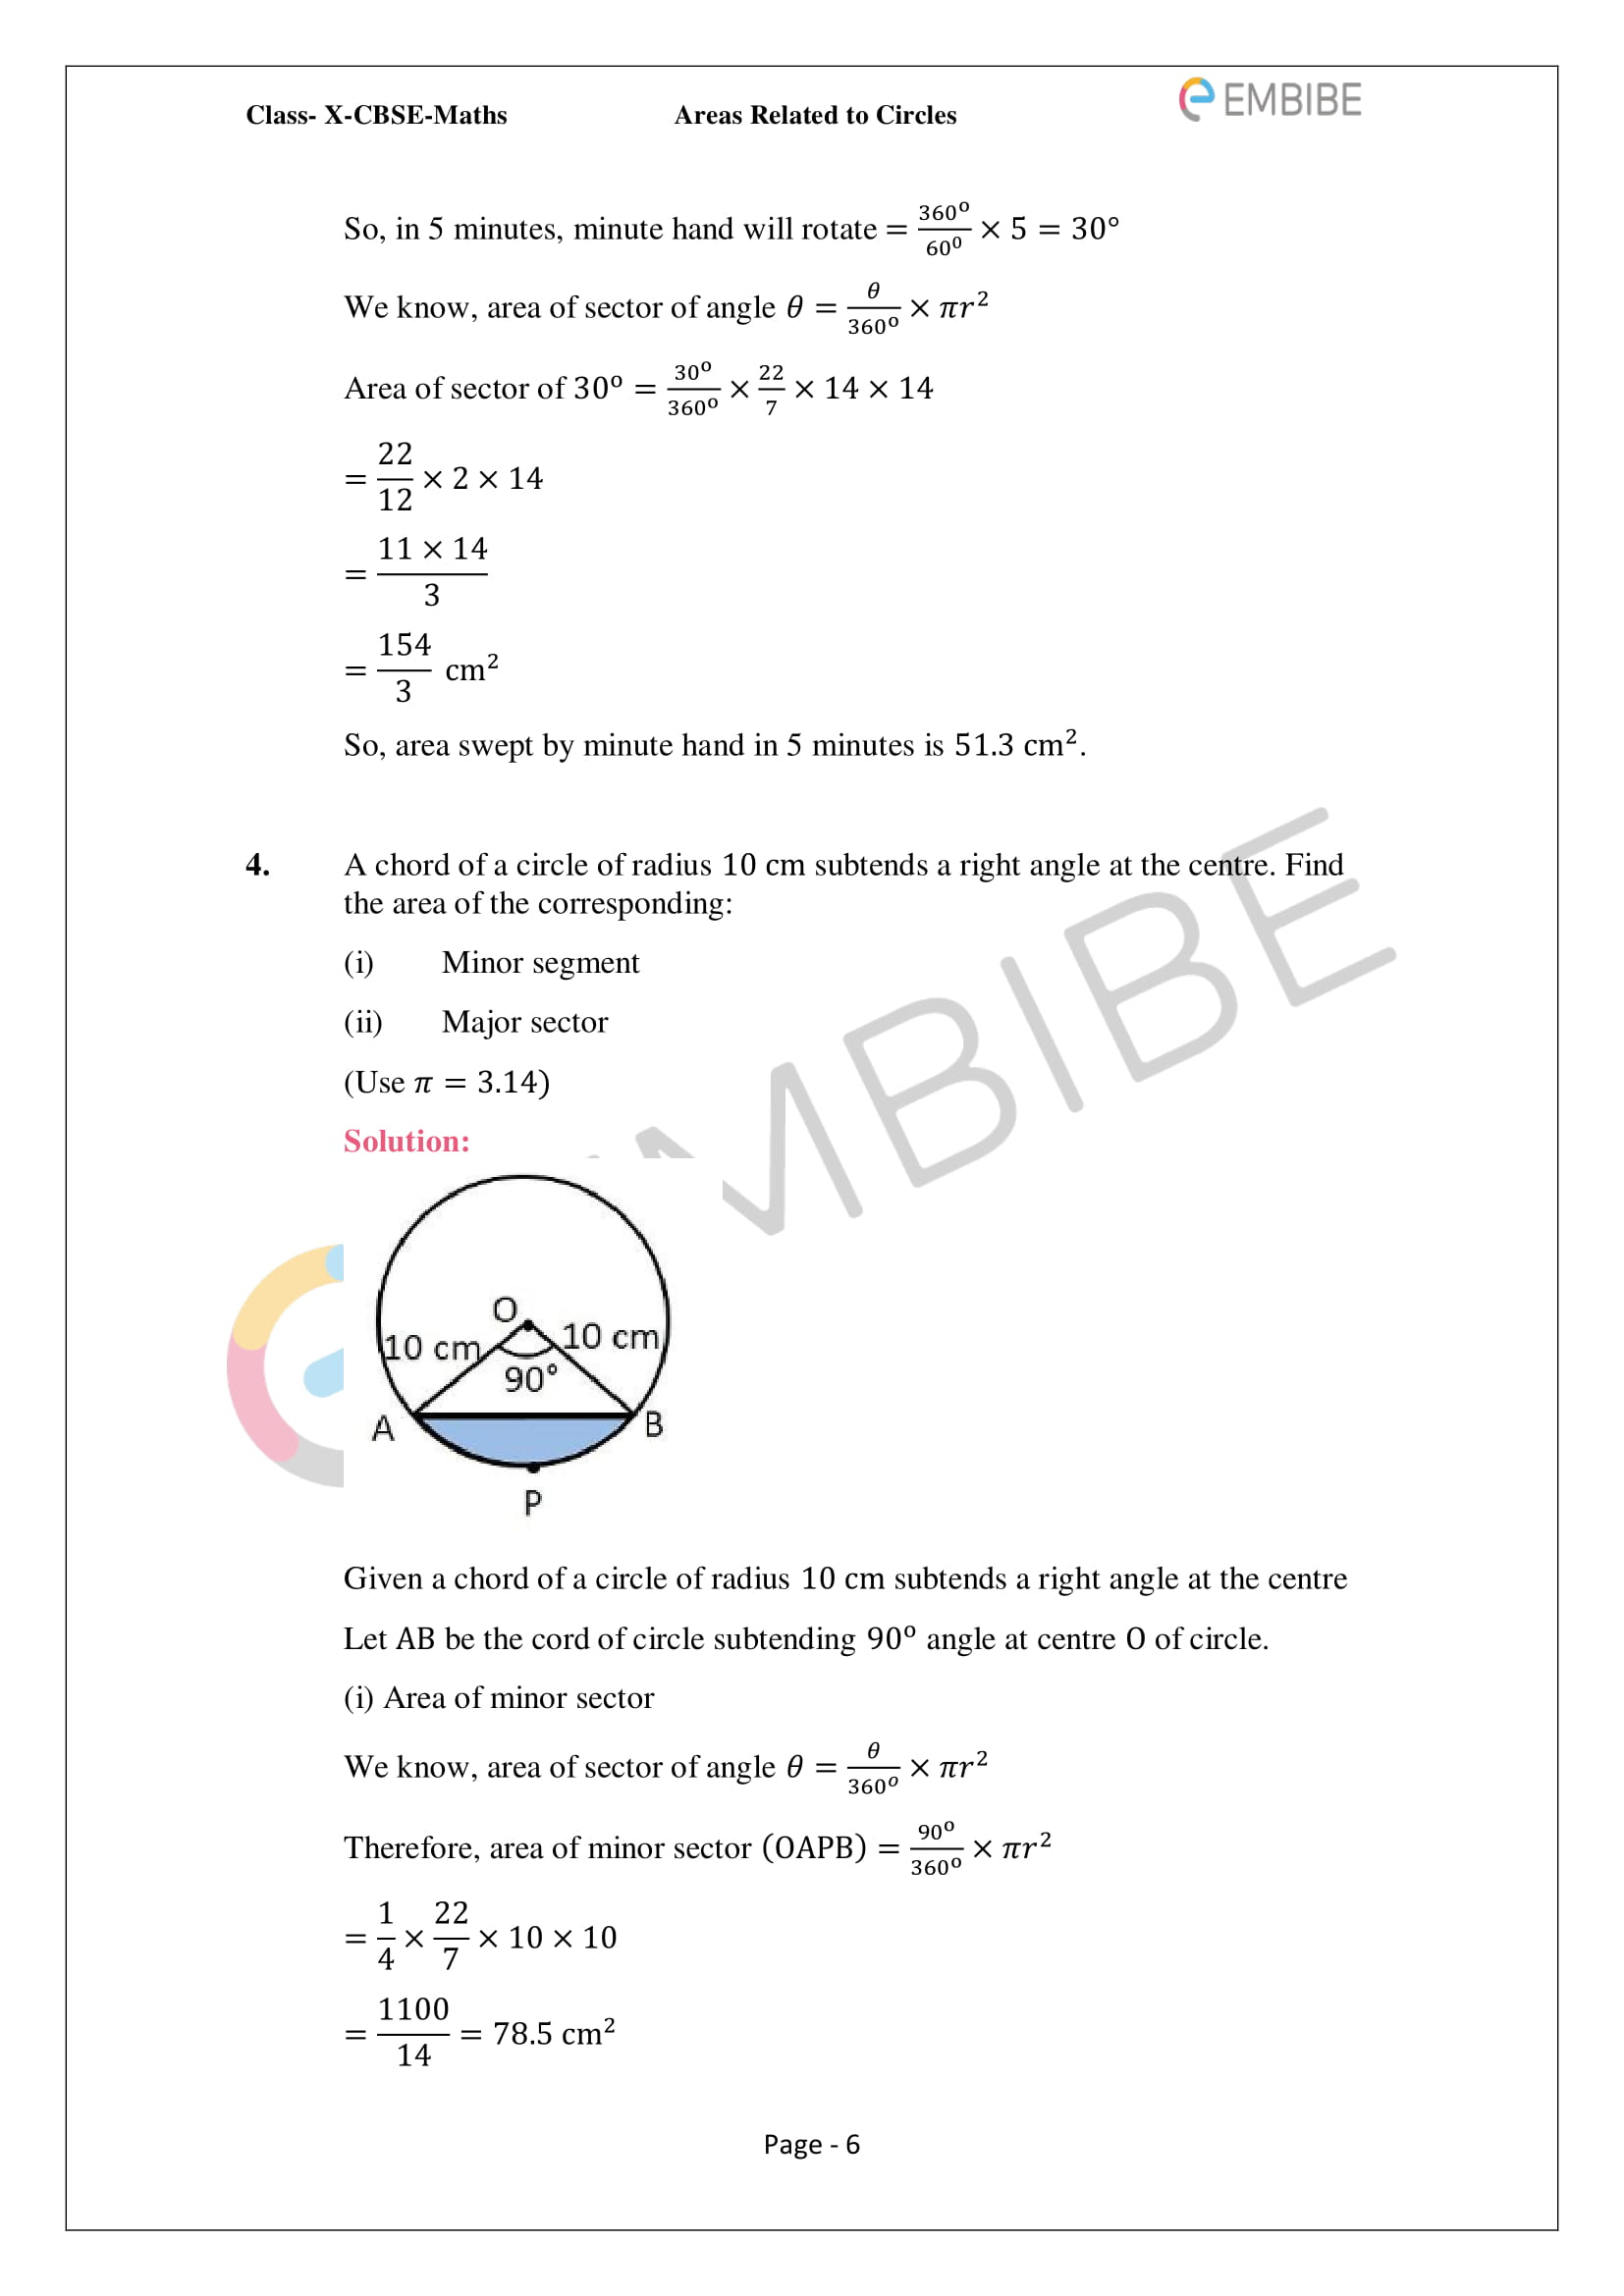 CBSE NCERT Solutions For Class 10 Maths Chapter 12 - Areas Related To Circle - 6